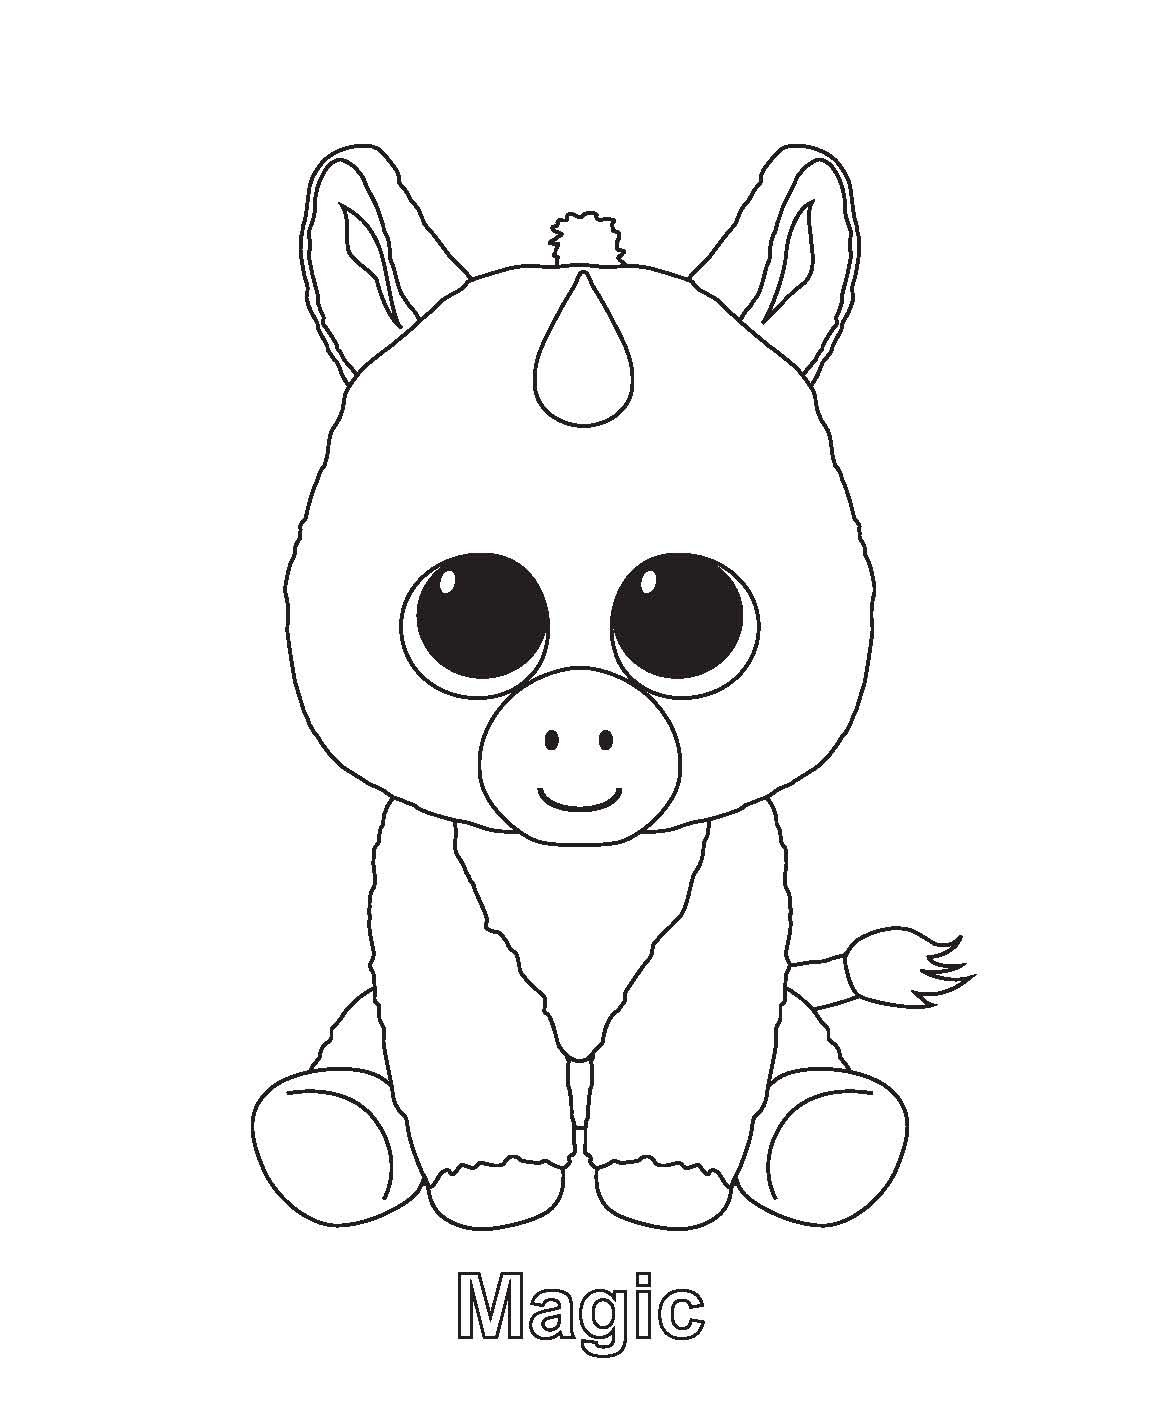 Ty Beanie Boo Coloring Pages Download And Print For Free | C's Pet - Free Printable Beanie Boo Coloring Pages